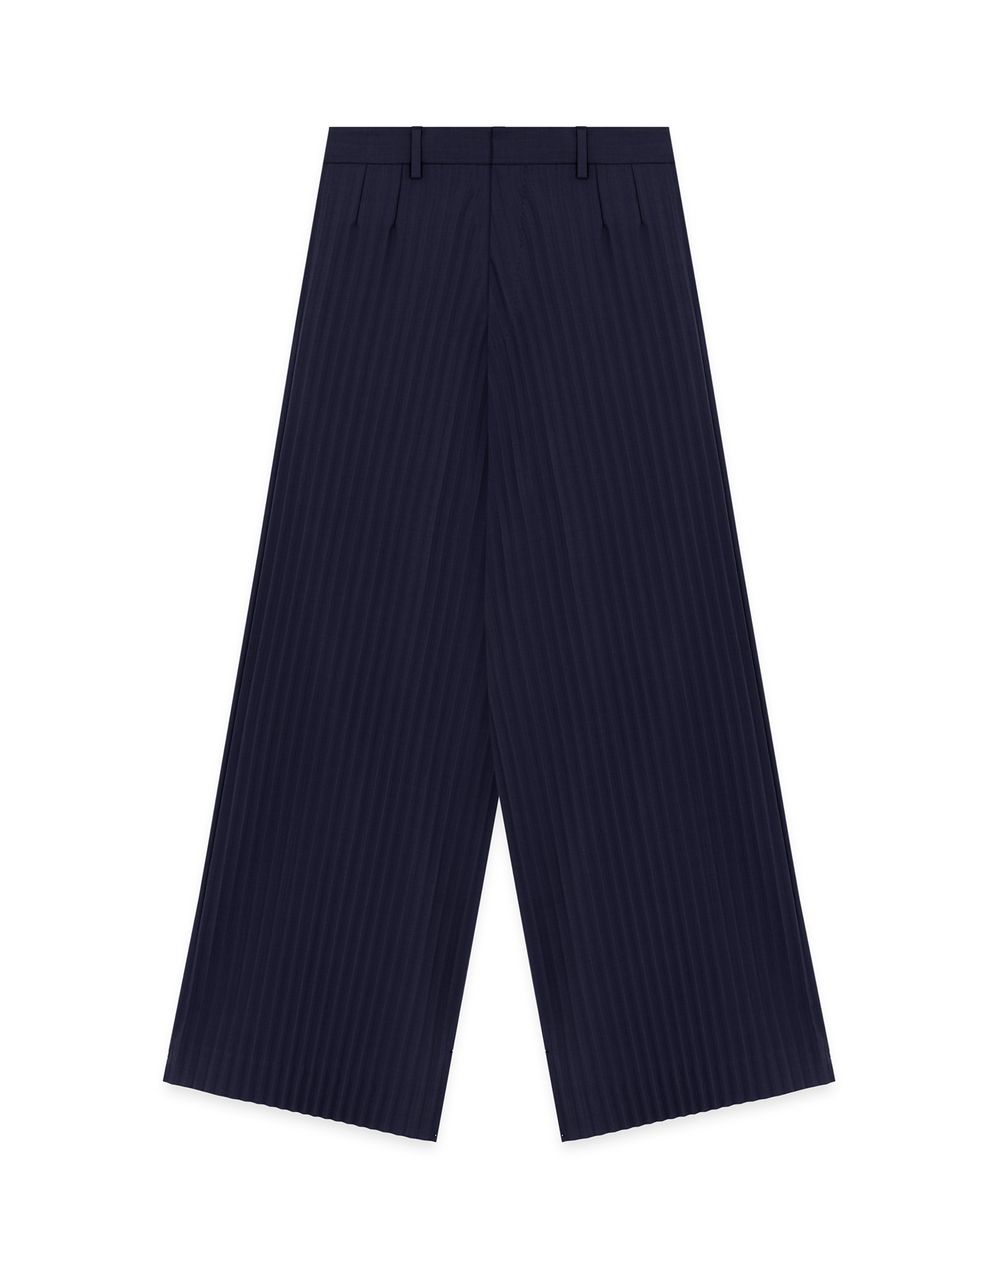 SUNBURST PLEATS 7/8 PANTS - Lanvin